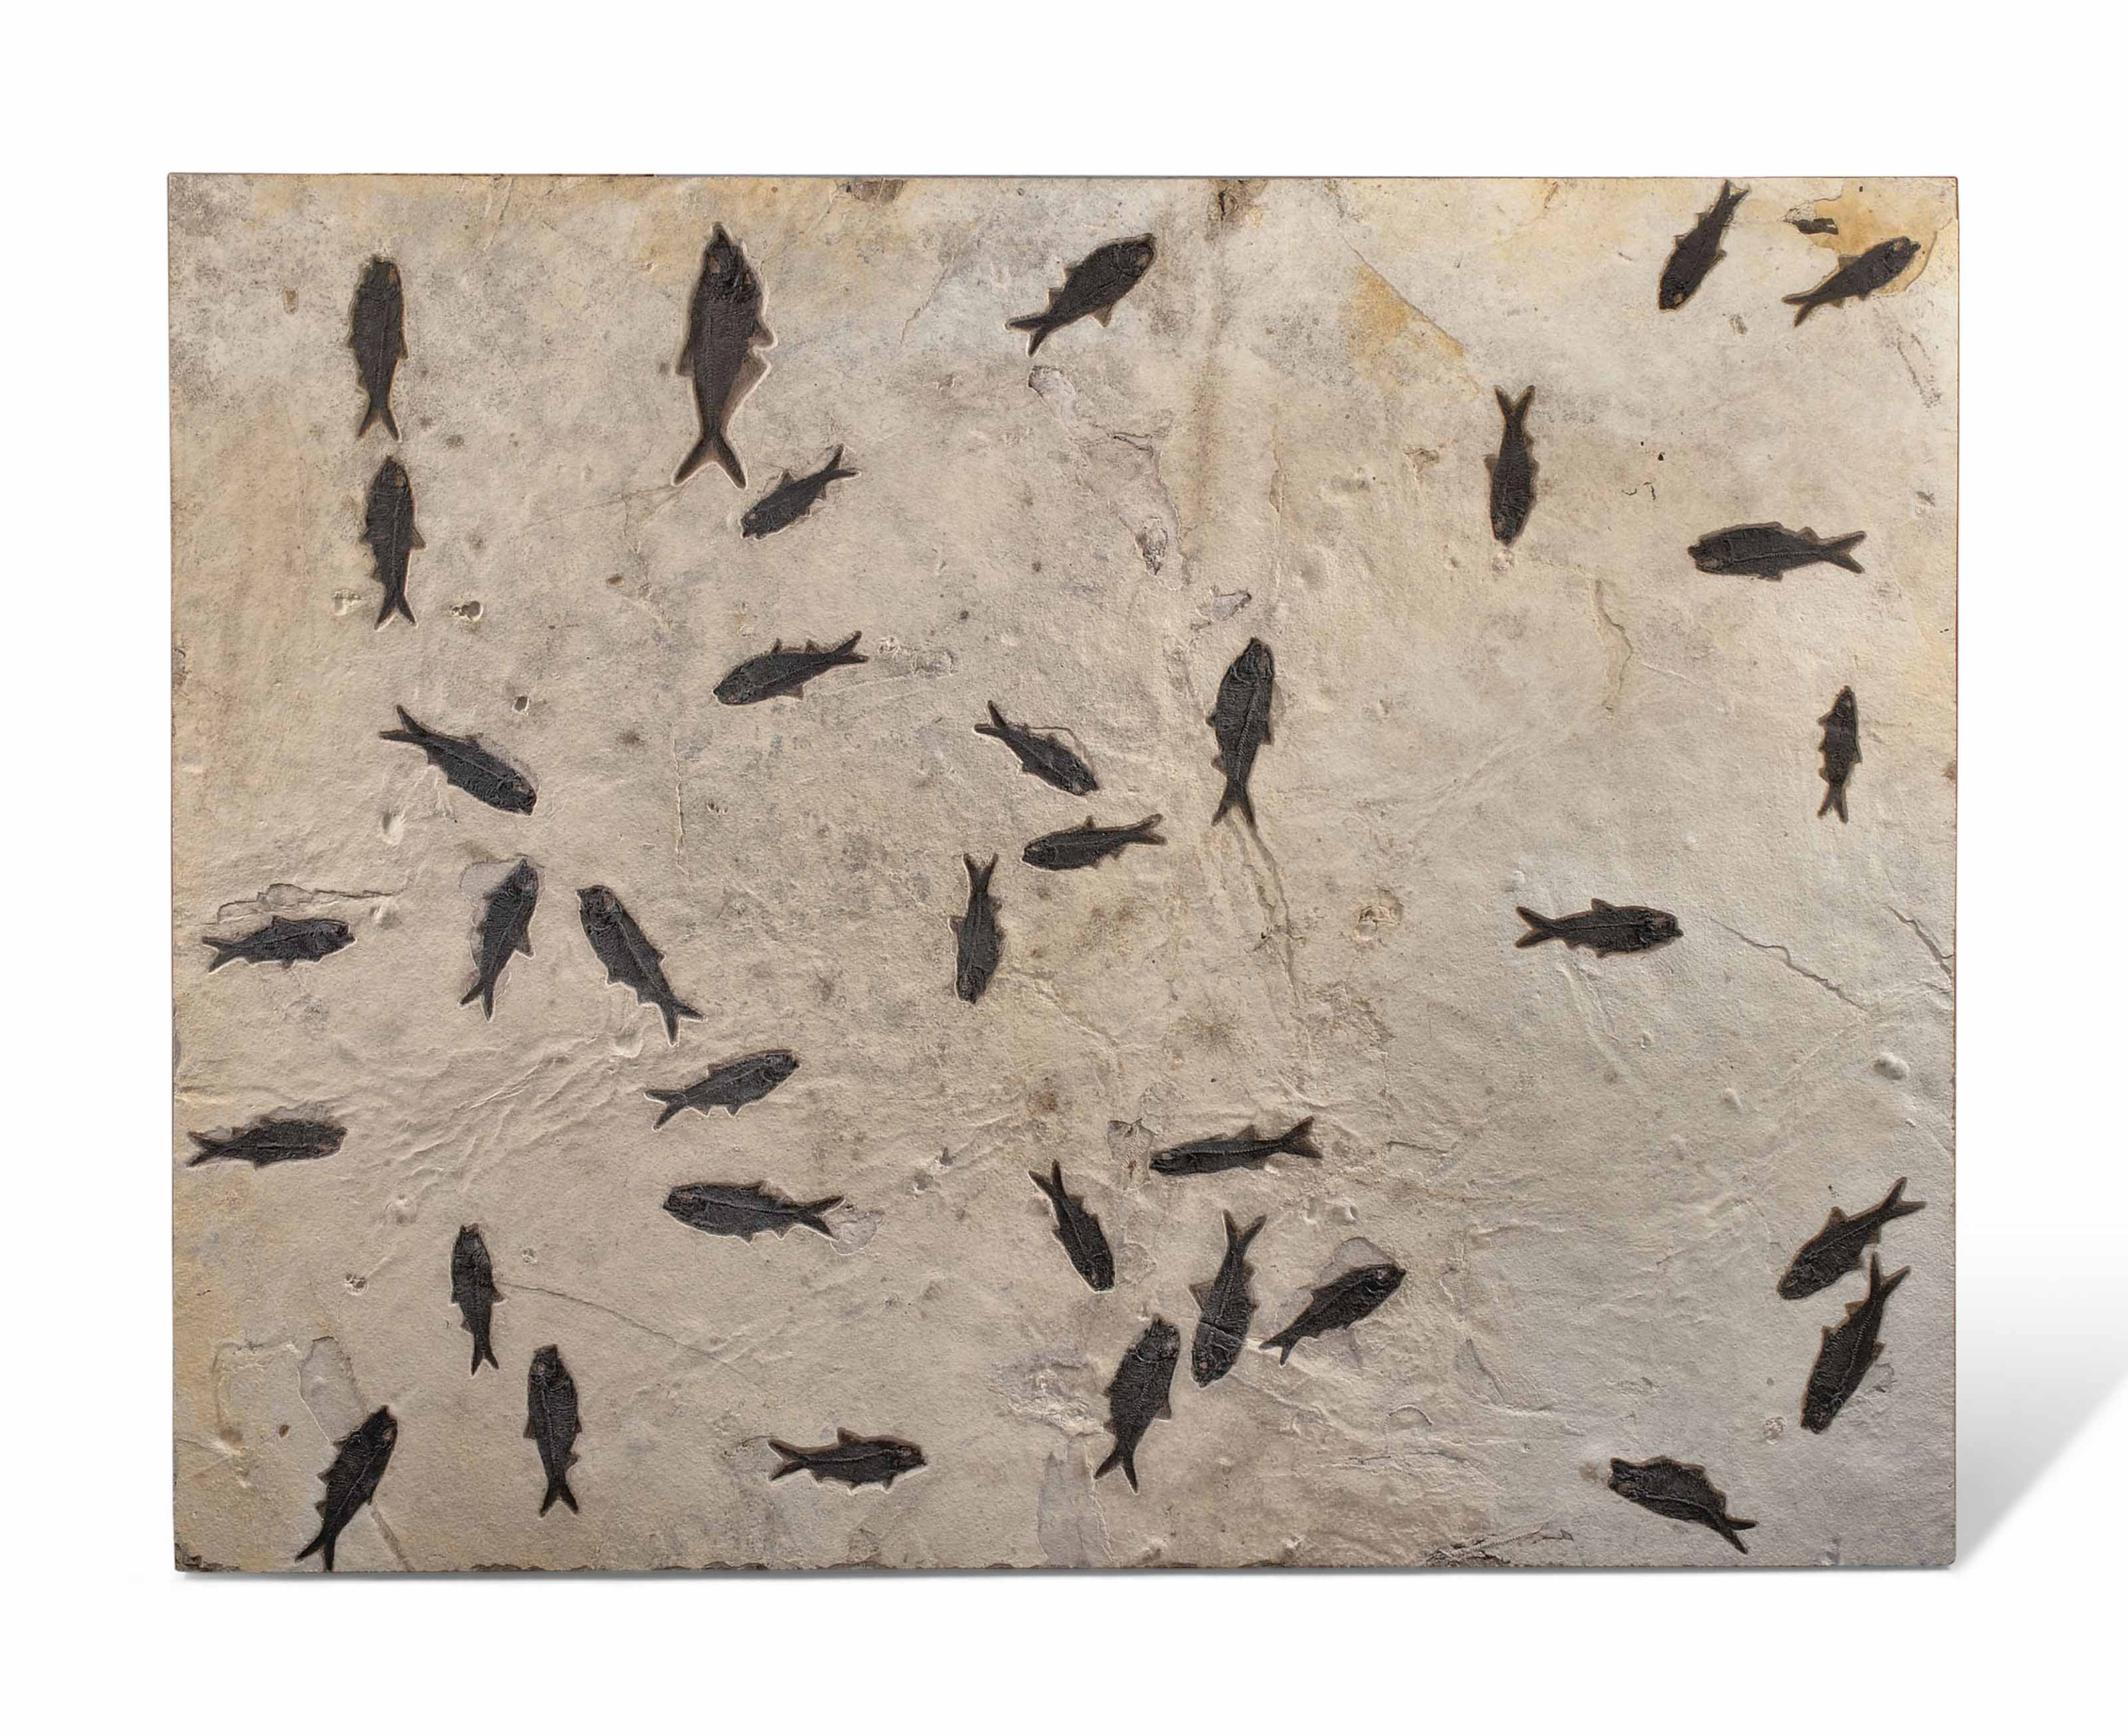 A large fossil fish mortality plaque. Green River, Wyoming, from the Eocene (c. 50 million years ago). 54 x 42 in (138 x 107 cm). Sold for £32,500 on 19 October 2016